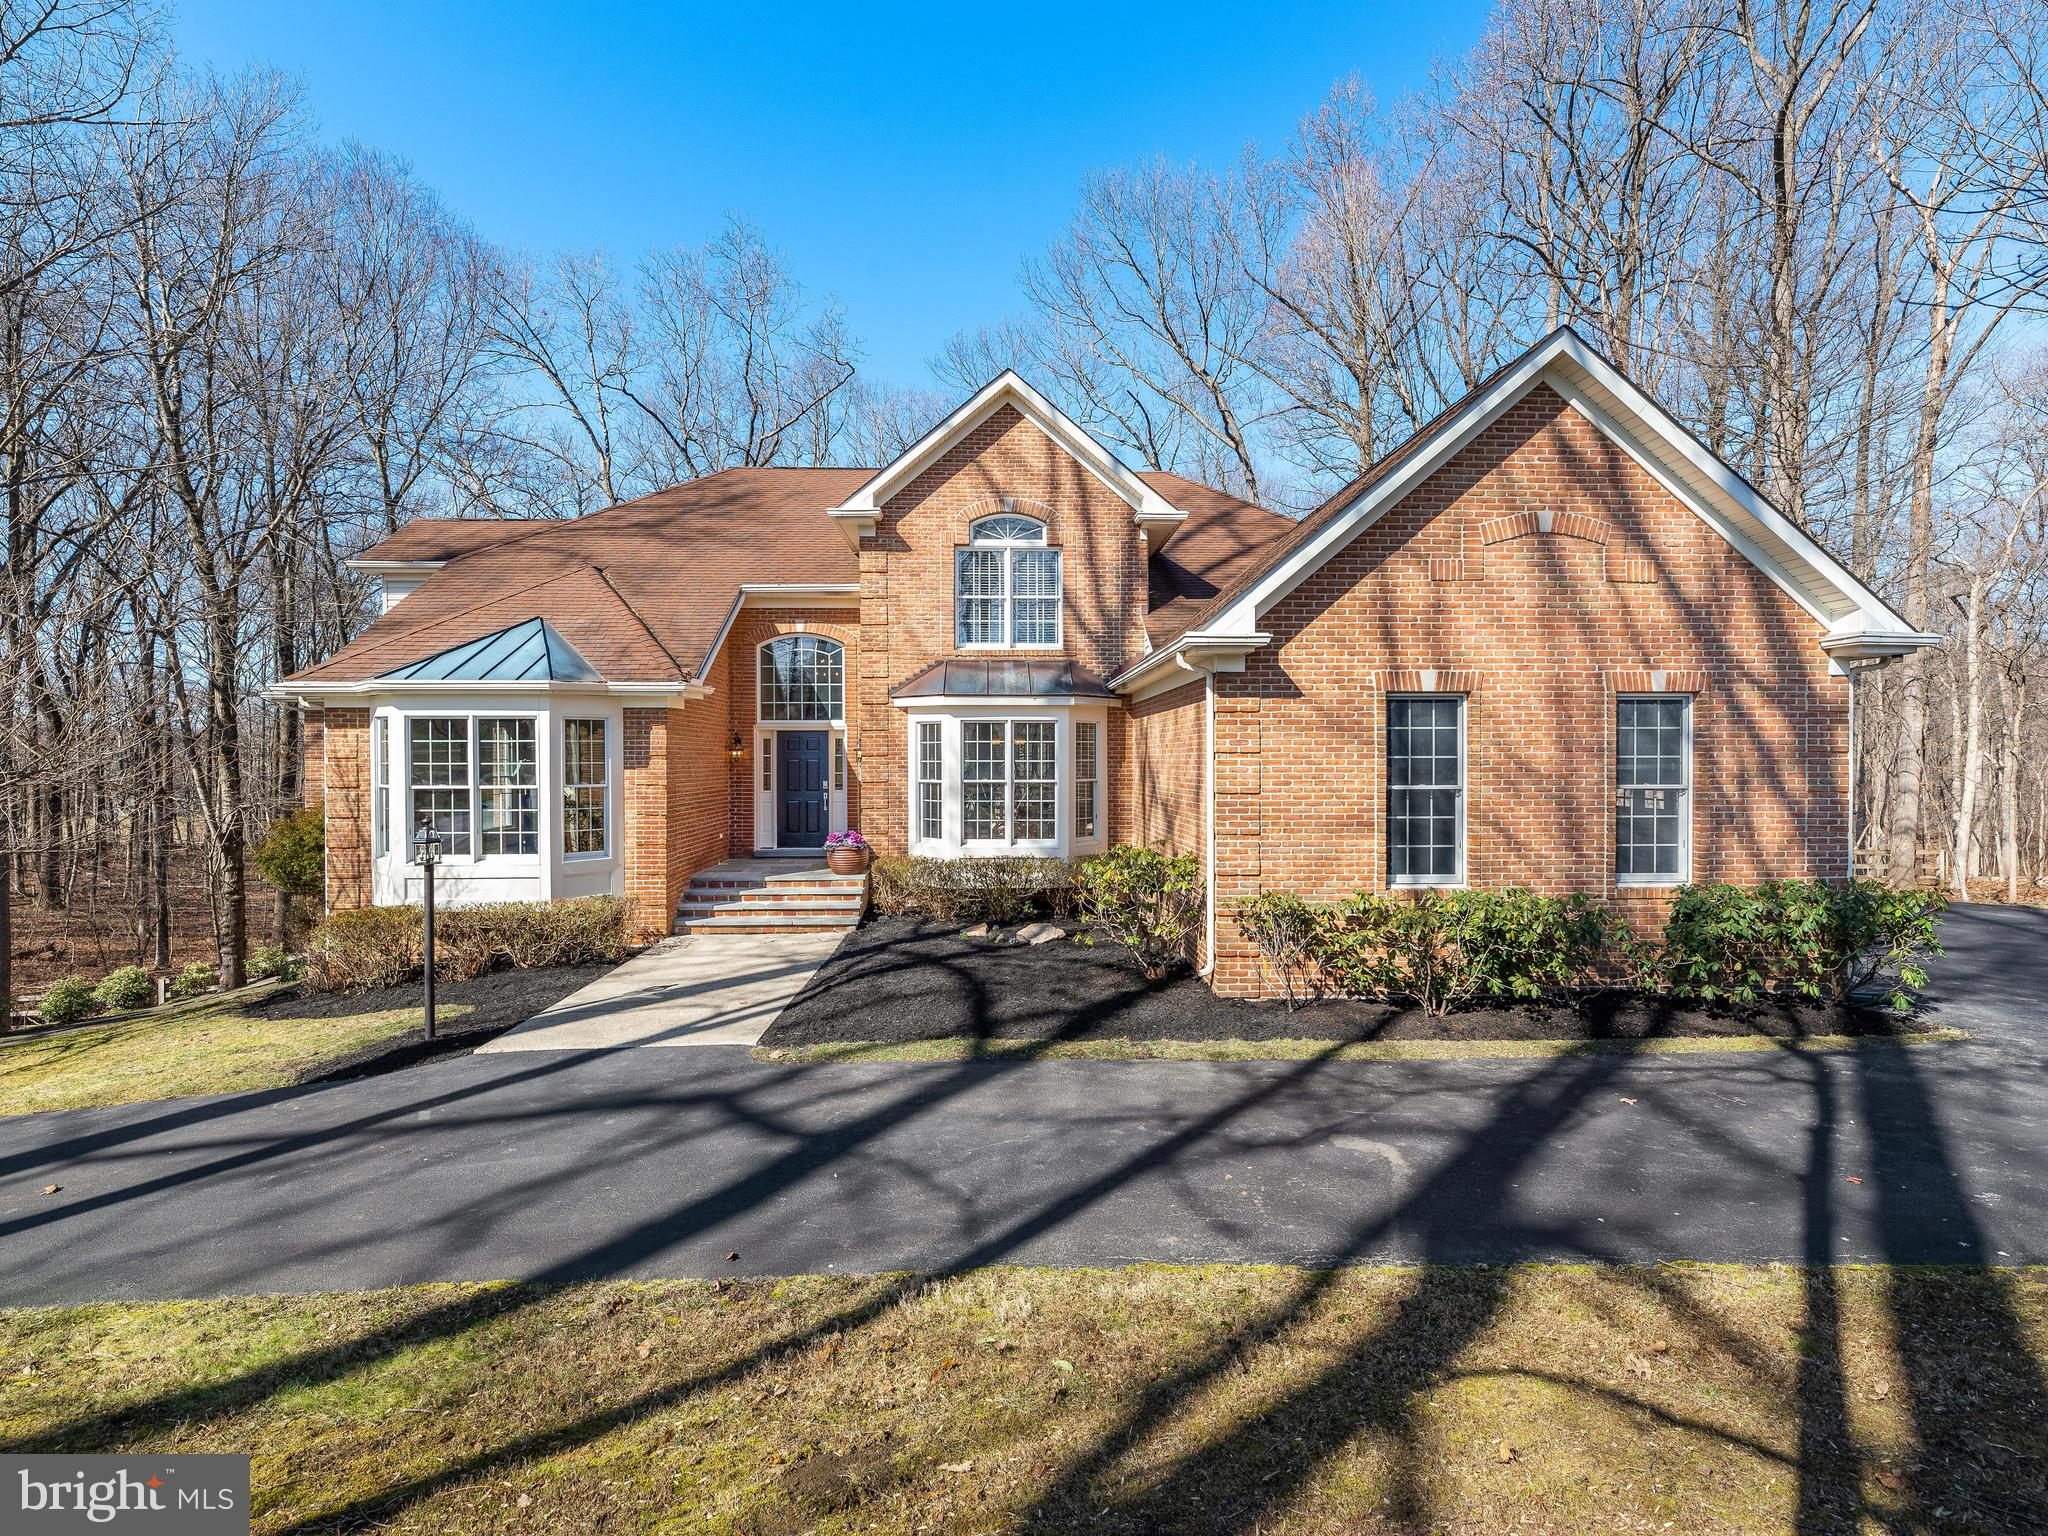 7628 GREENDELL LANE, HIGHLAND, MD 20777